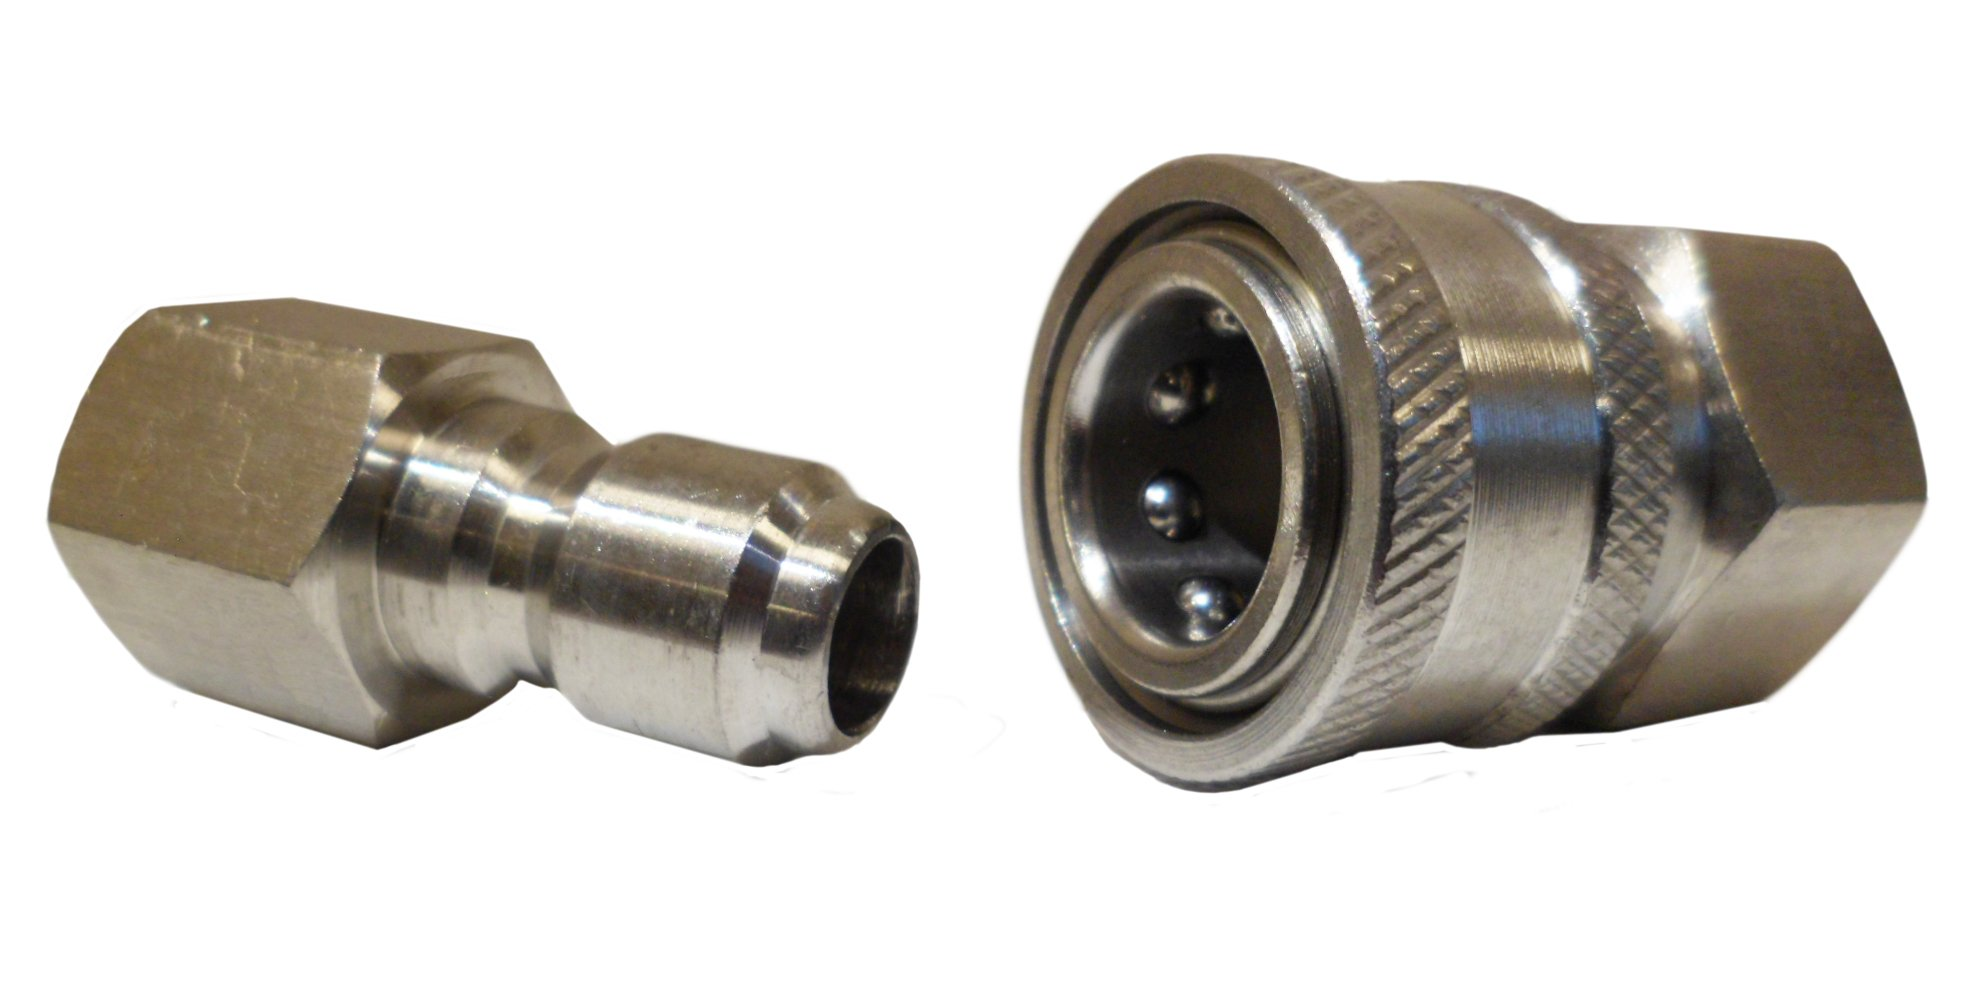 Ultimate Washer 18709 3/8-Inch Stainless Steel Quick Connect Pressure Washer Adapter Set, Max Pressure 5000 PSI Rating